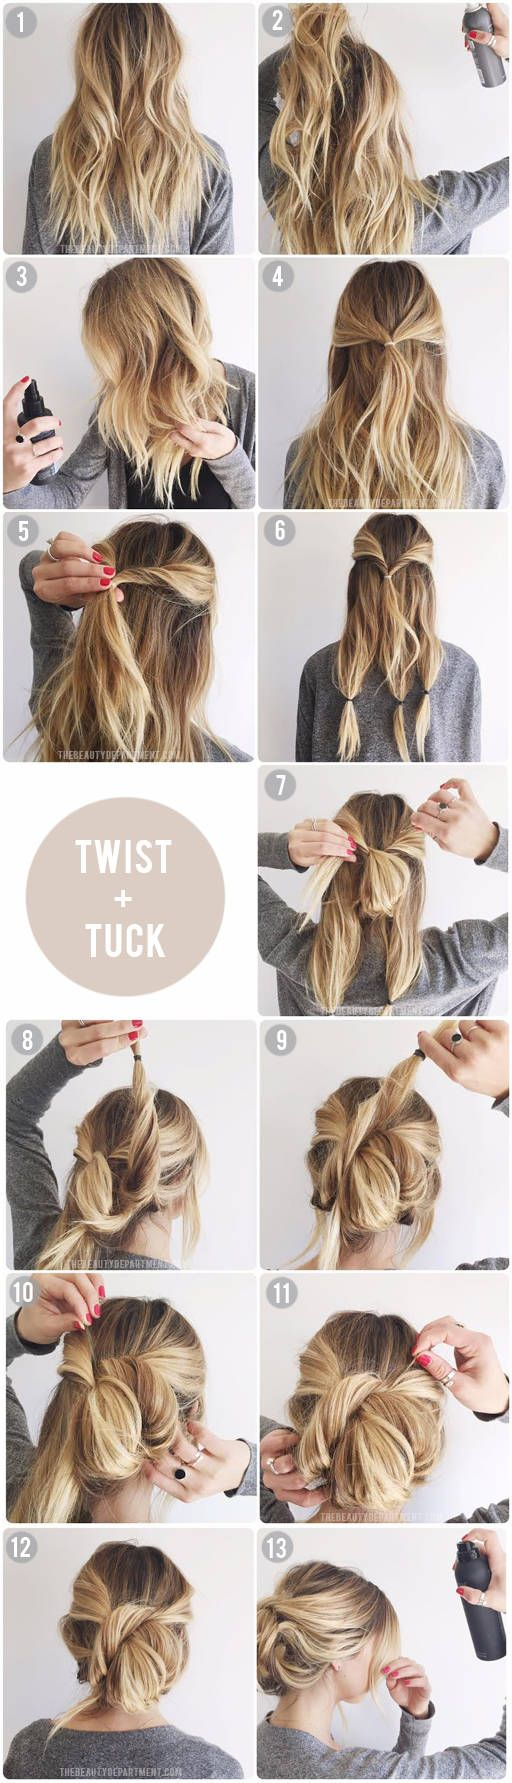 the beauty department easiest updo ever tutorial hair | Twist and tuck